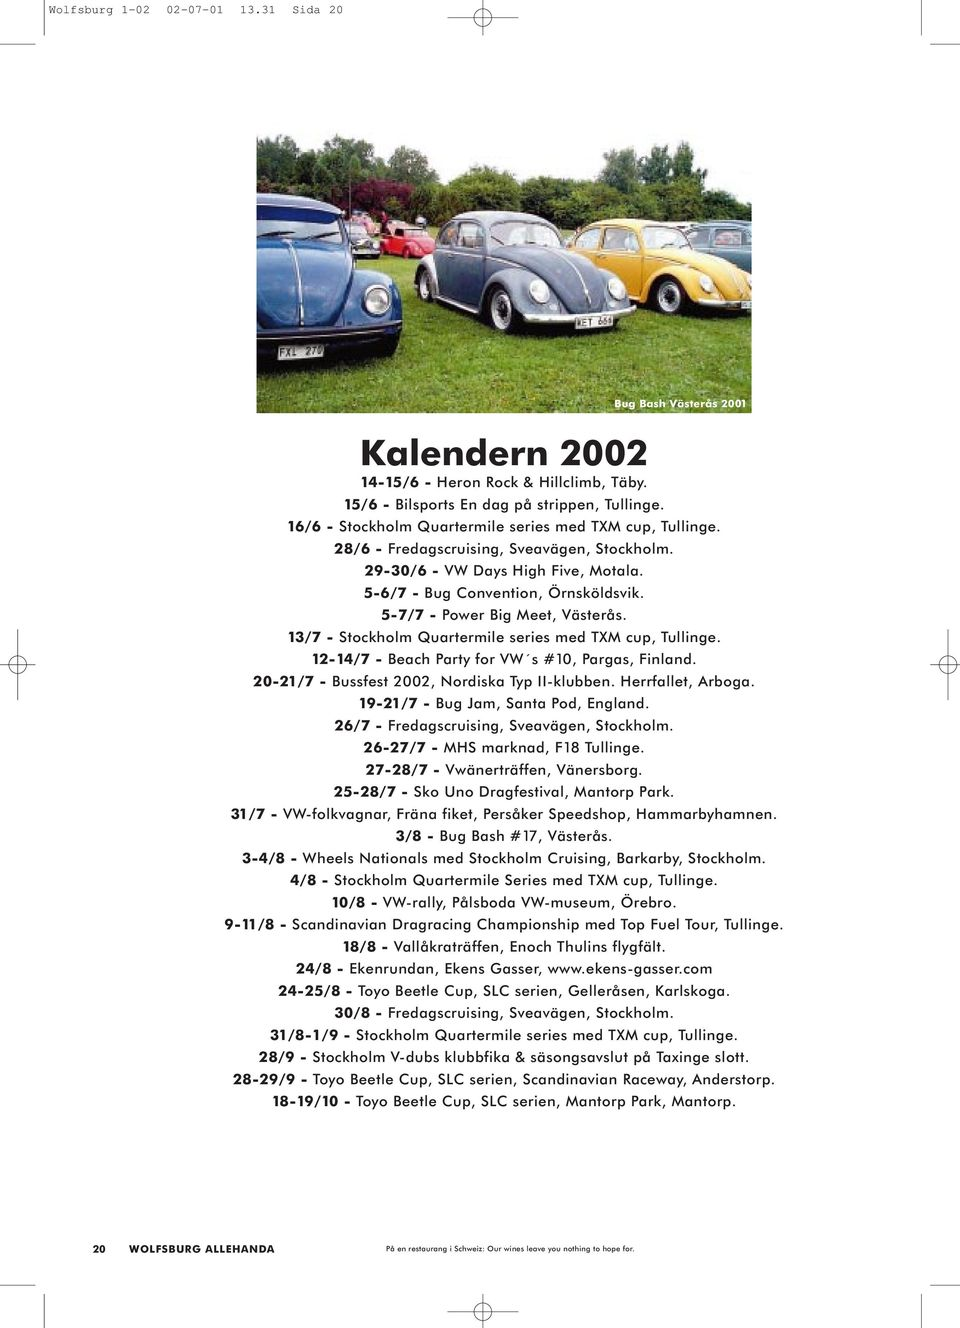 5-7/7 - Power Big Meet, Västerås. 13/7 - Stockholm Quartermile series med TXM cup, Tullinge. 12-14/7 - Beach Party for VW s #10, Pargas, Finland. 20-21/7 - Bussfest 2002, Nordiska Typ II-klubben.